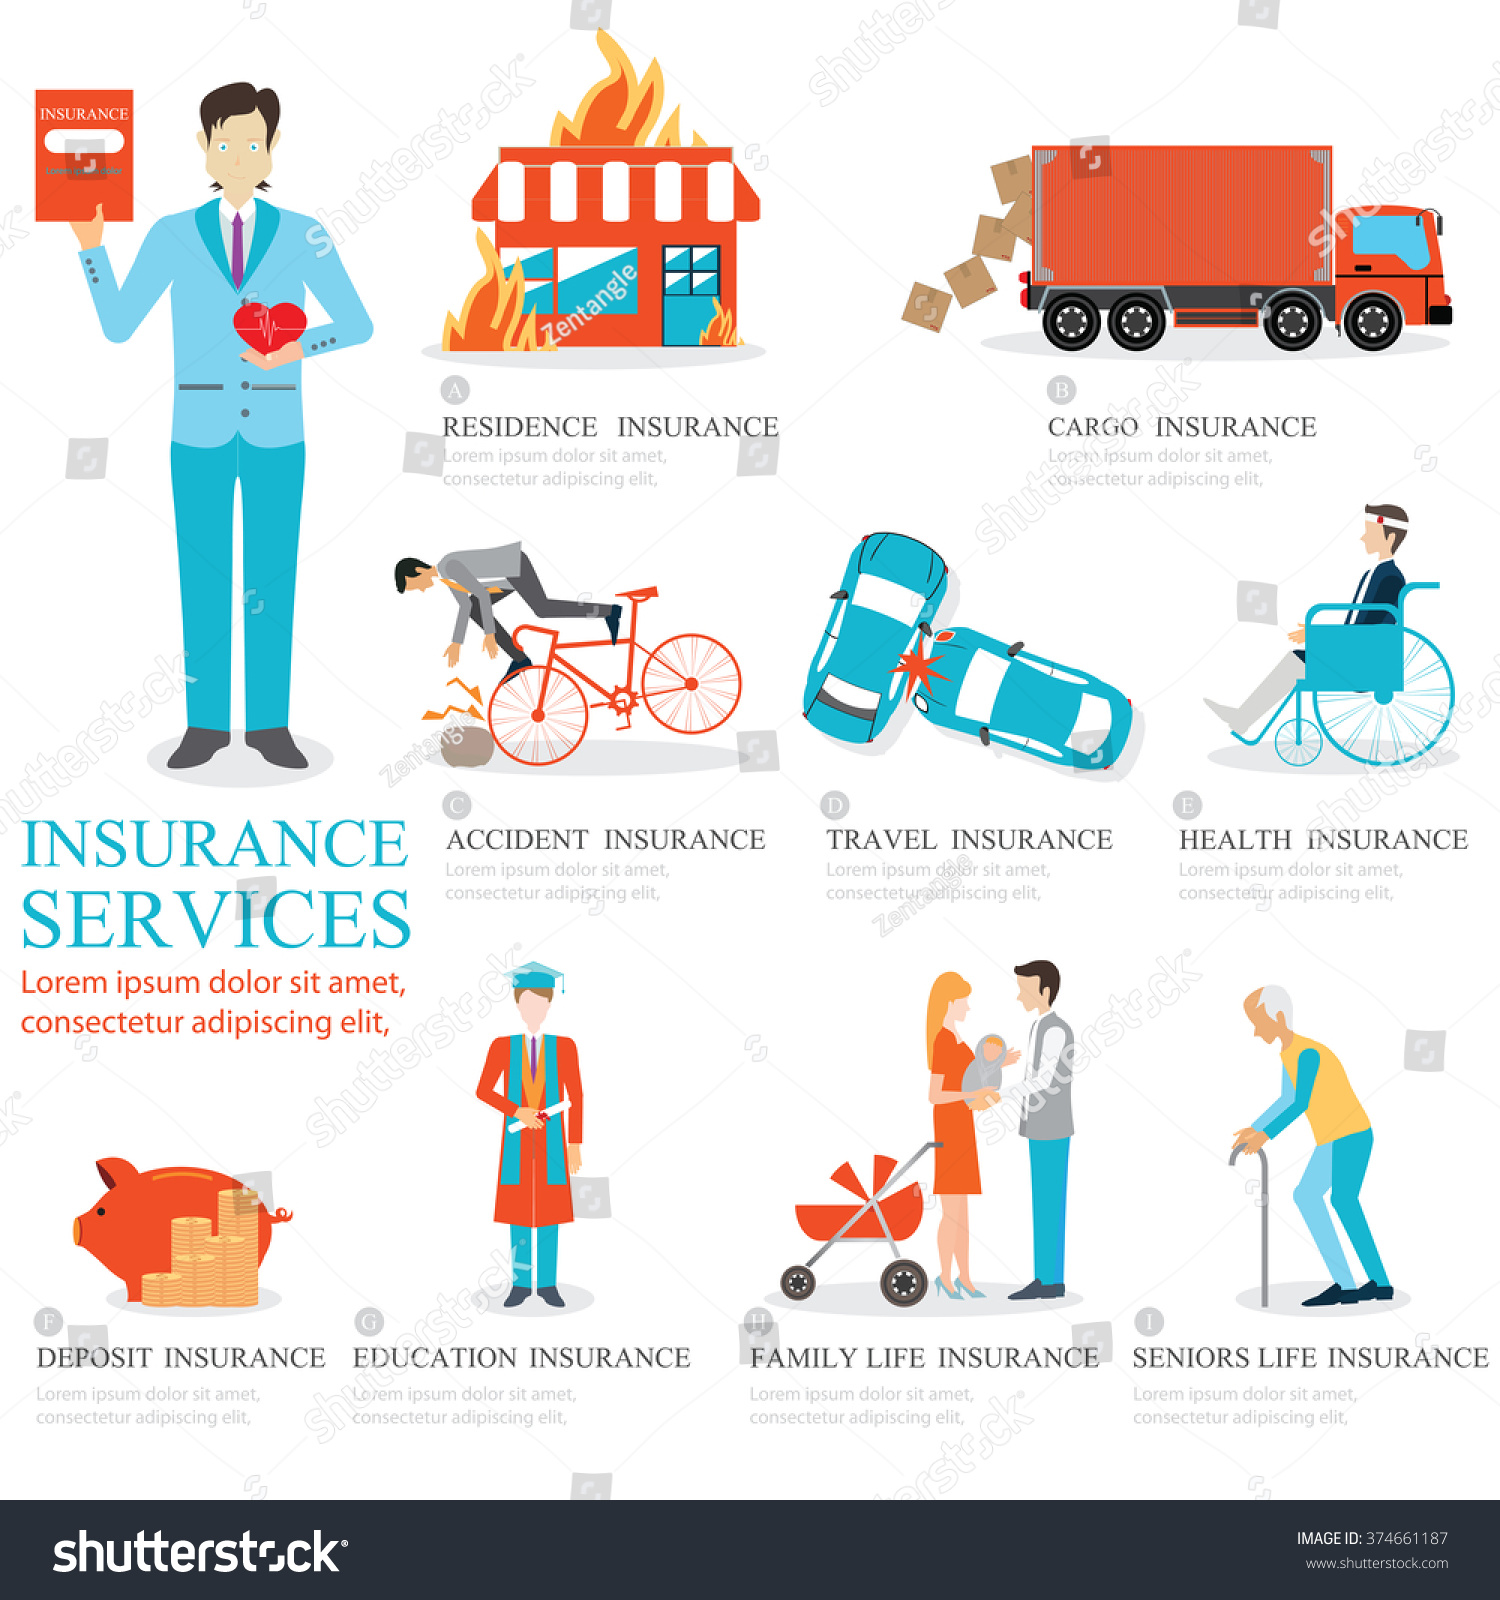 Insurance And Education: Info Graphic Of Business Insurance Services, Family